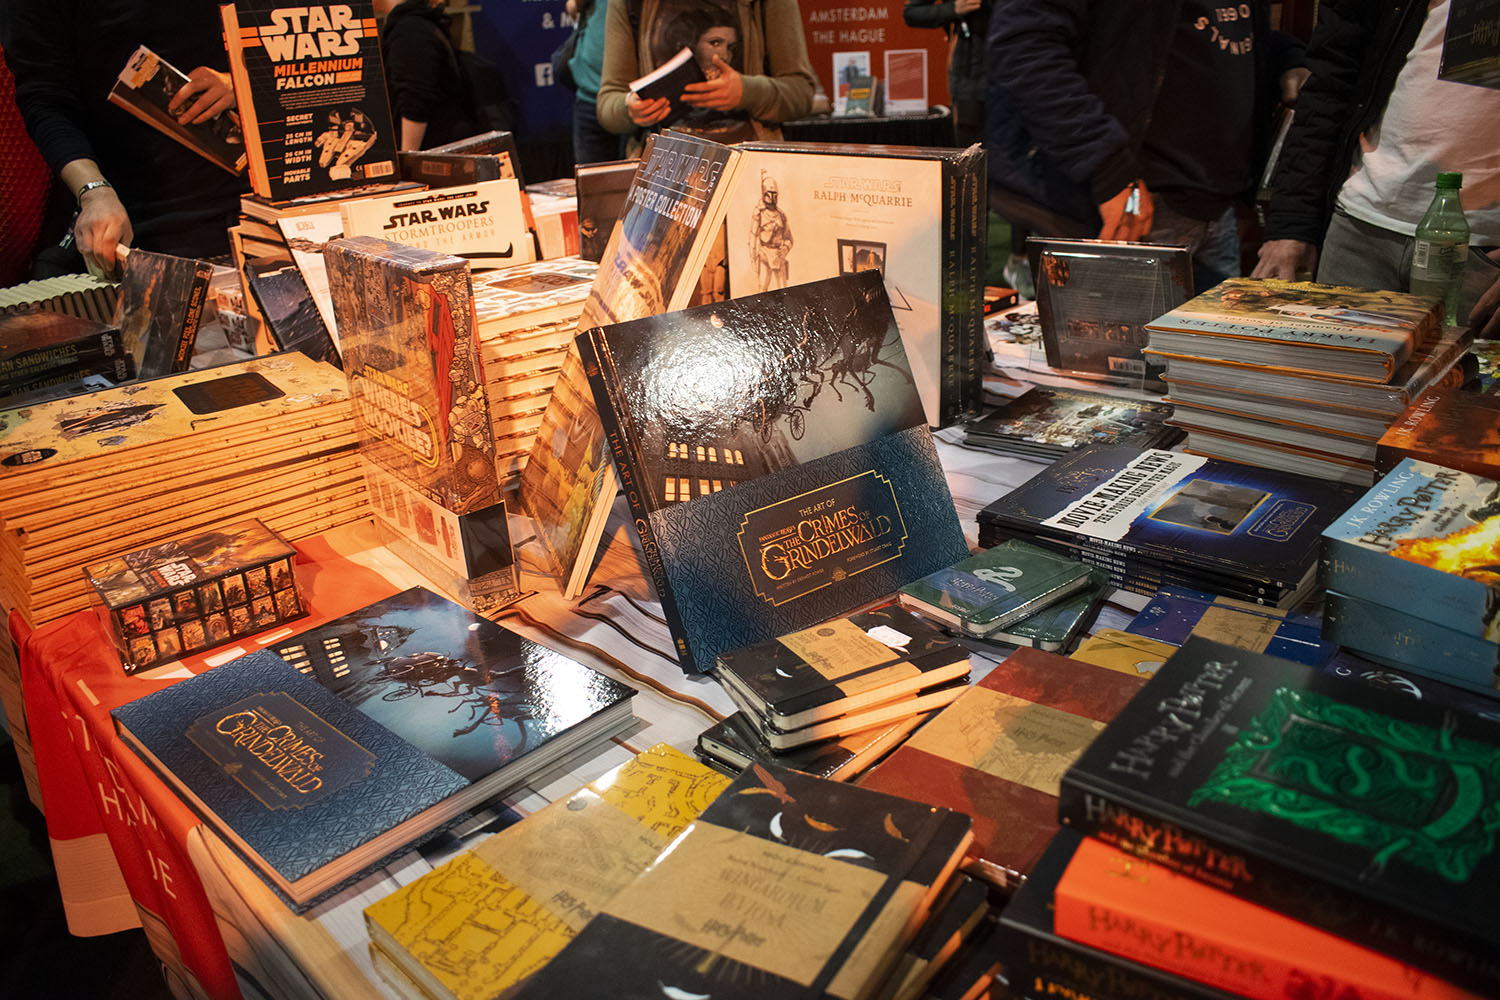 Fotoreportage: Dutch Comic Con Winter Edition 2018 American Book Center